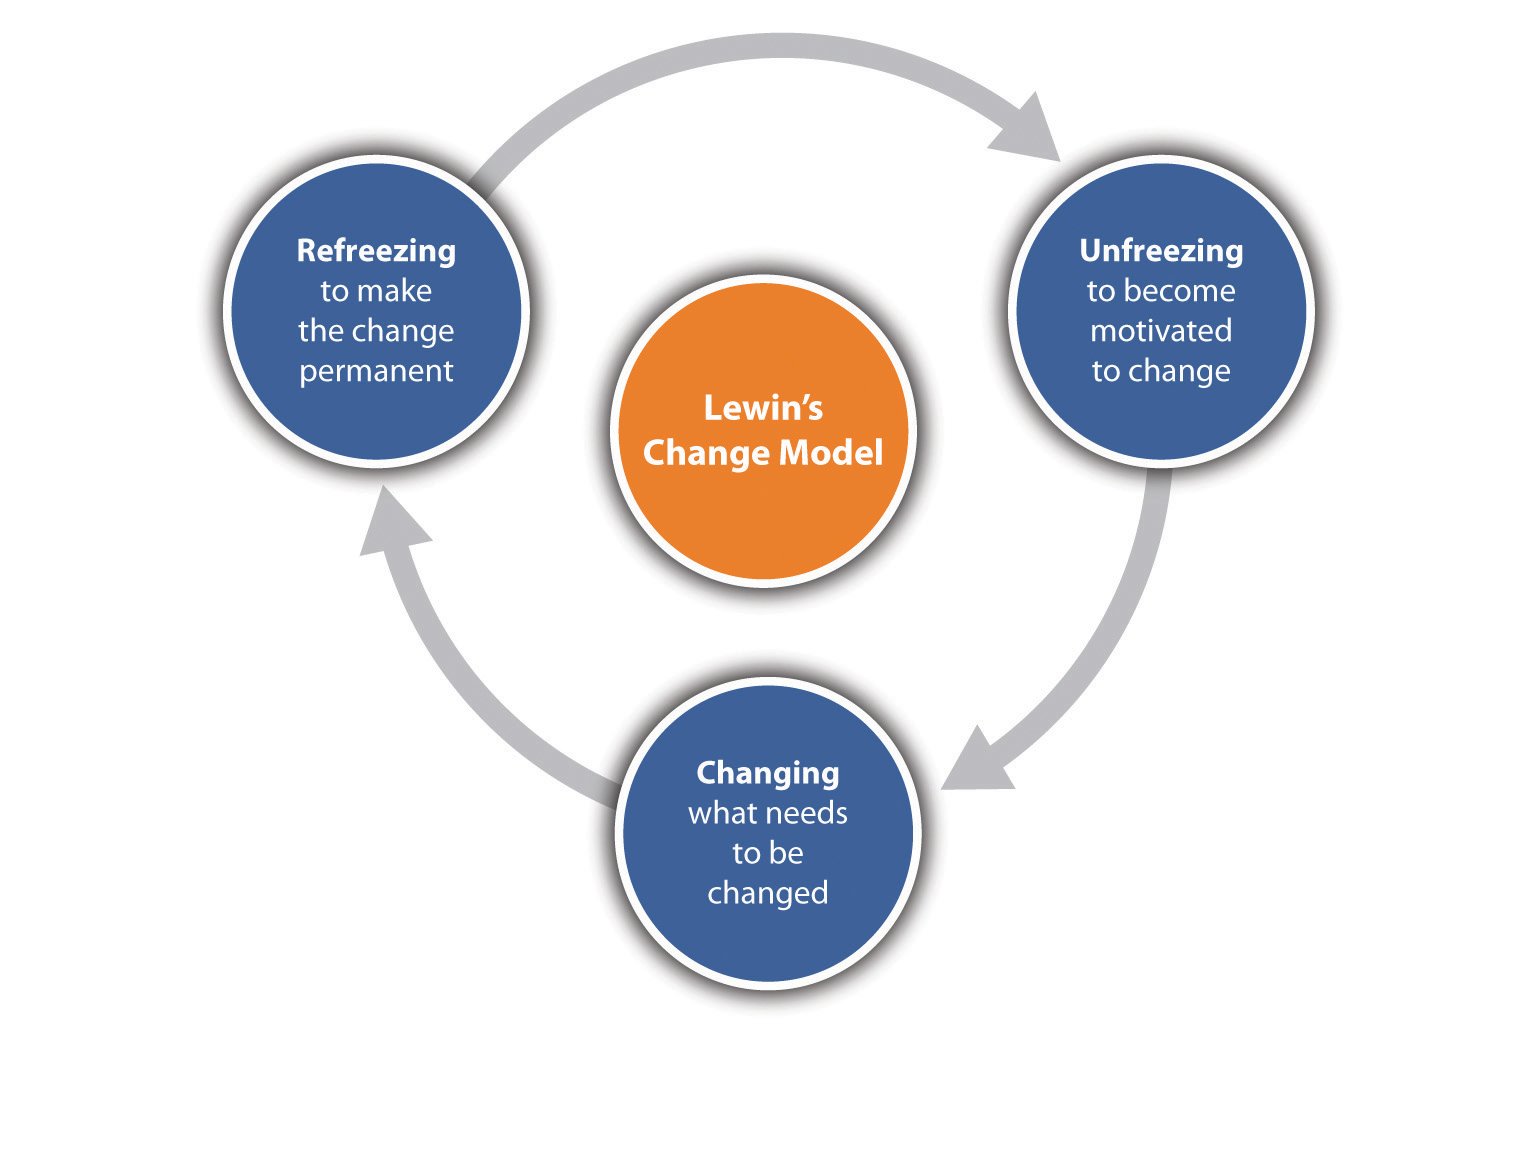 lewins change management model Lewin's model for change management development and training service, academic & professional enhancement centre dts@swanseaacuk 4 manage and understand the doubts and concerns.